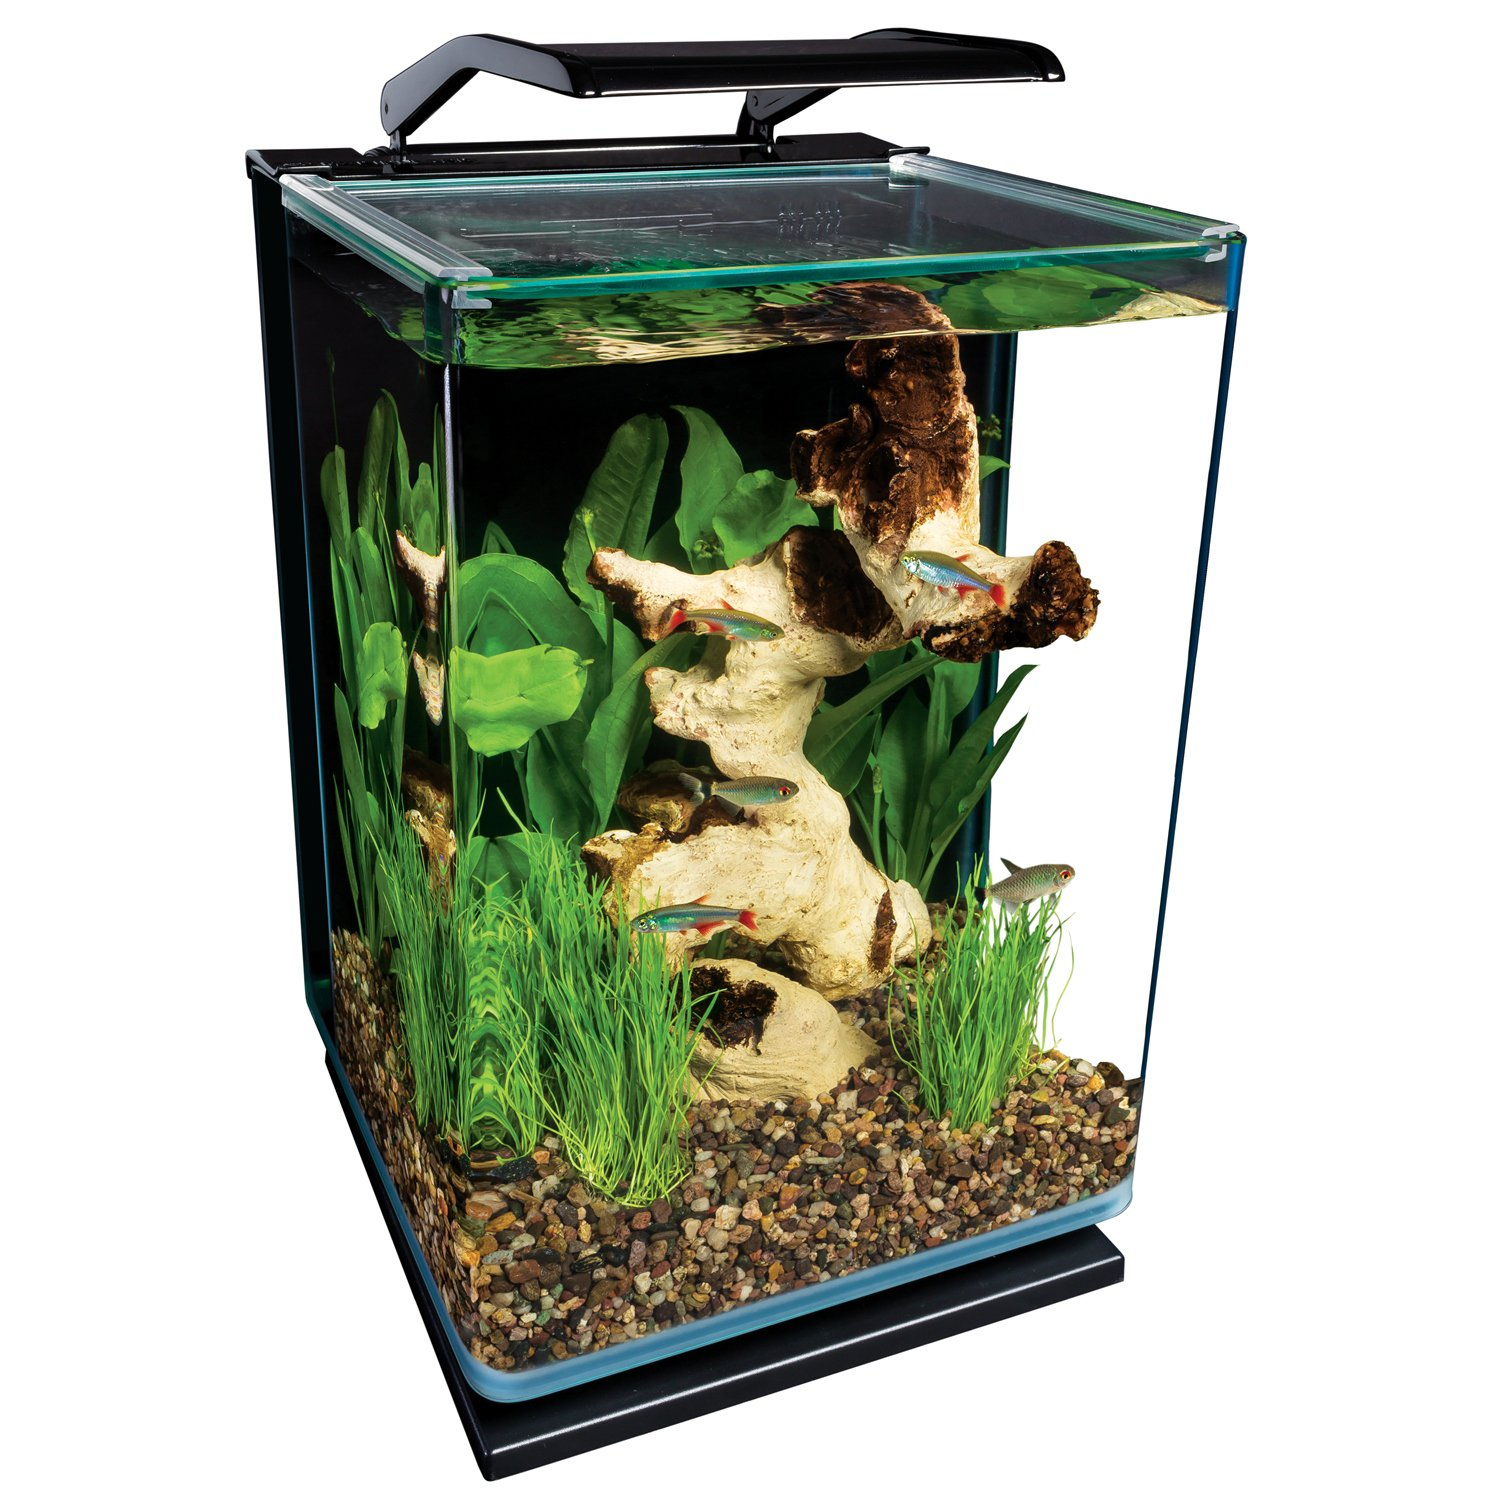 Aquarium fish 5 gallon tank - Aquarium Fish 5 Gallon Tank